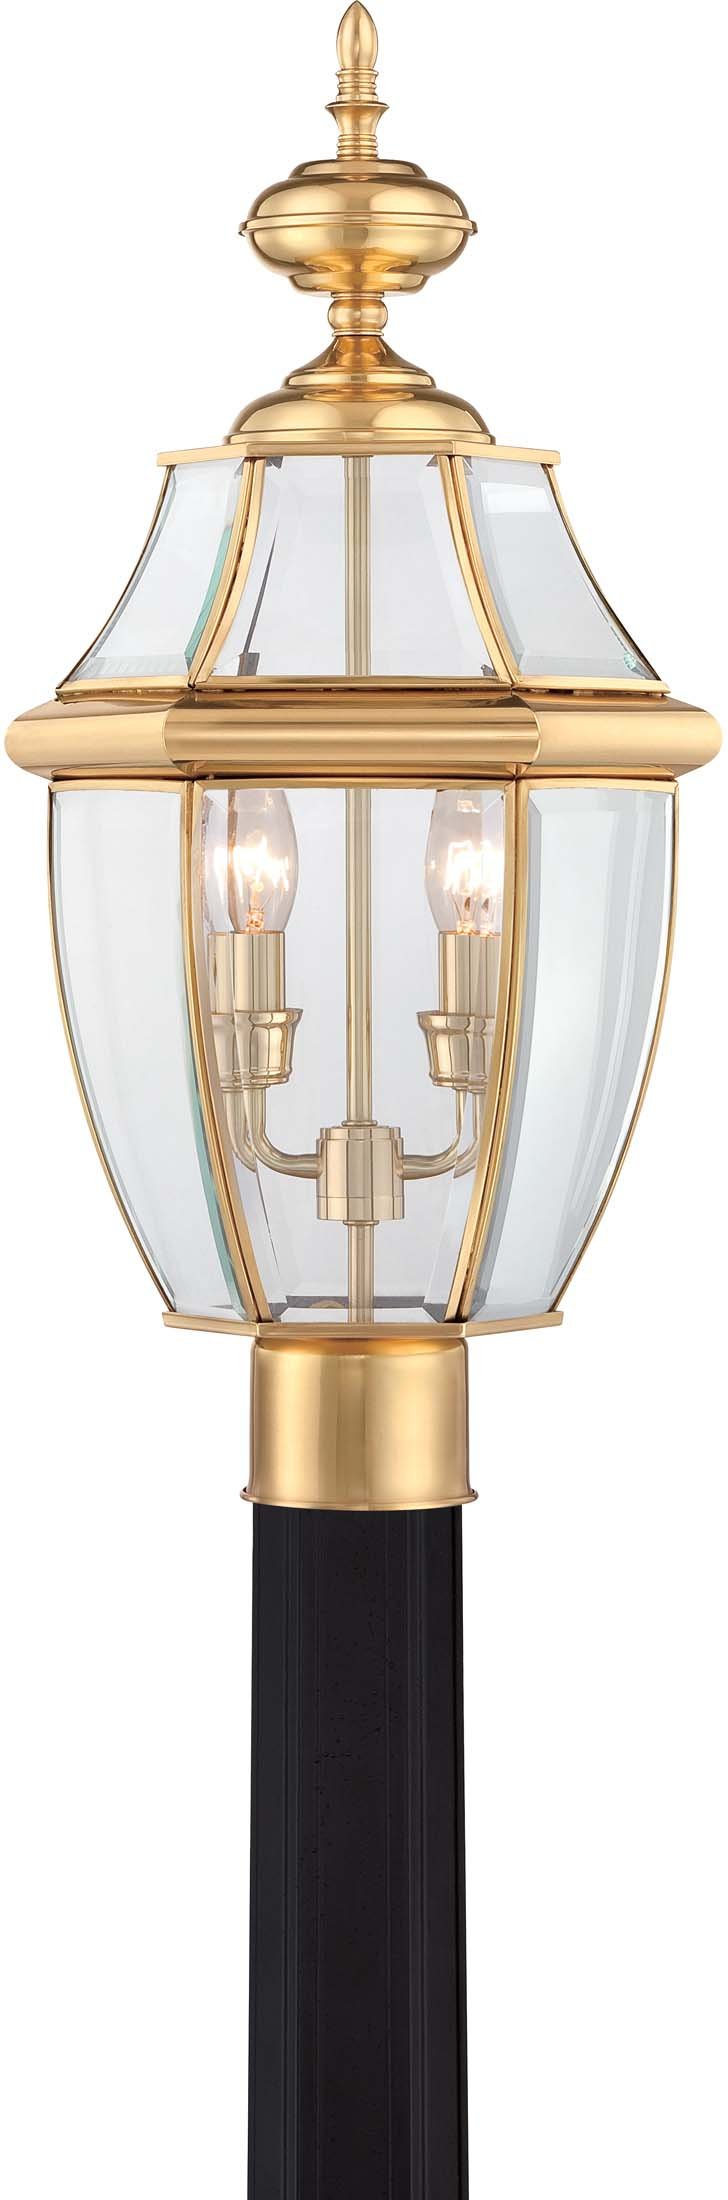 Quoizel NY9042B 2-Light Newbury Outdoor Lantern in Polished Brass by Quoizel